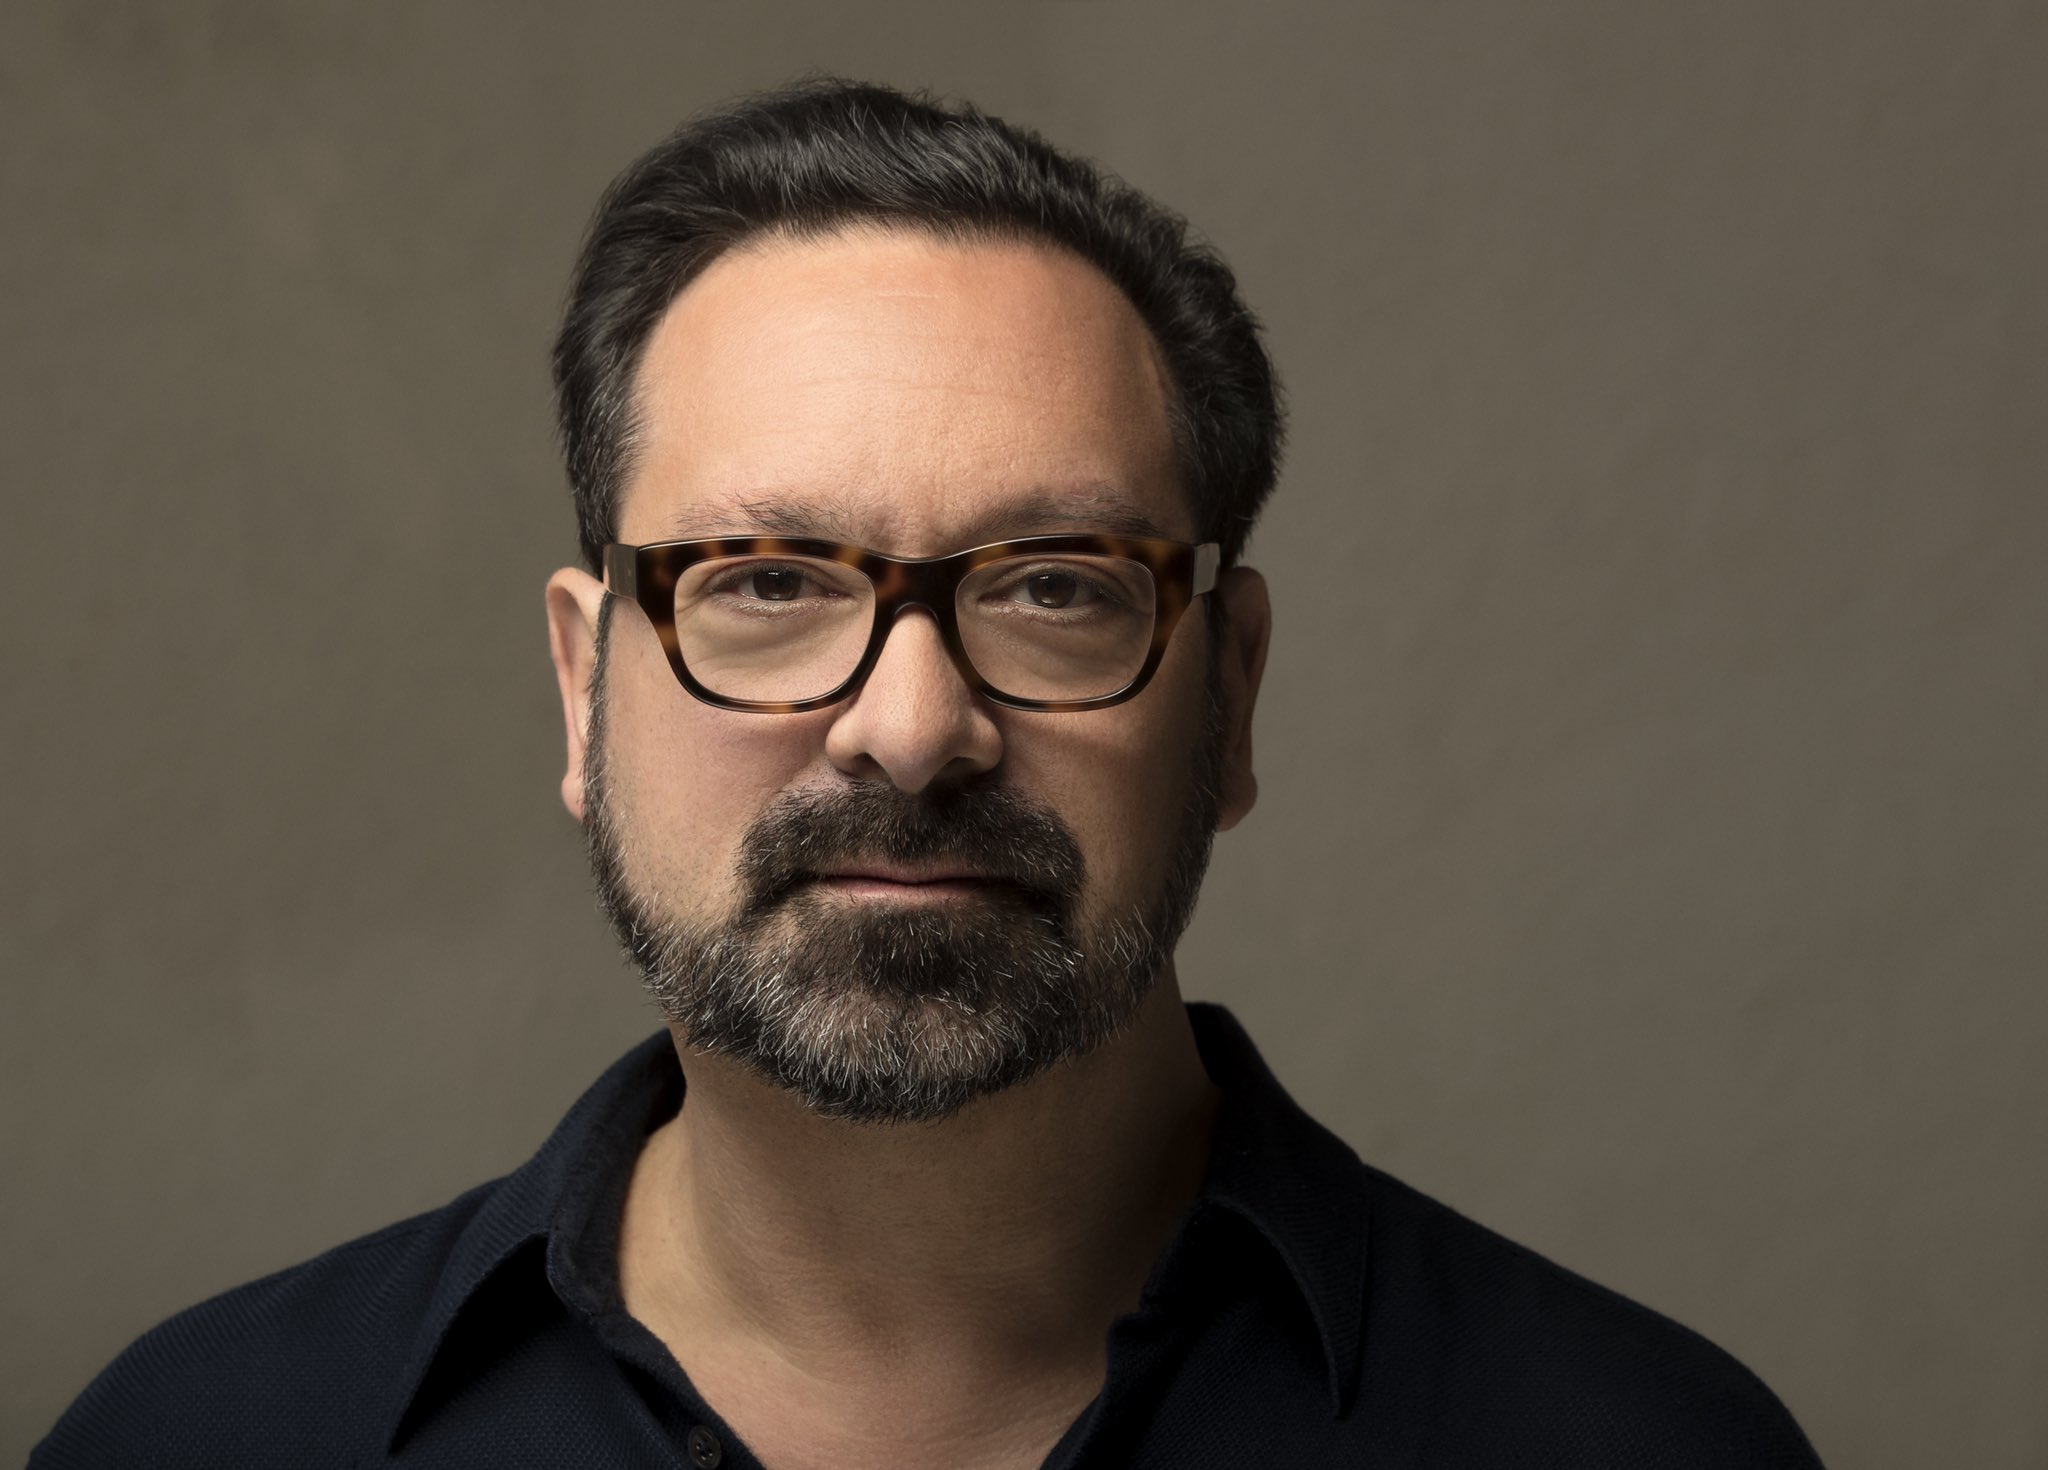 James Mangold Reflects On Film Industry Mid-Quarantine - Exclusive  Interview   Discussingfilm